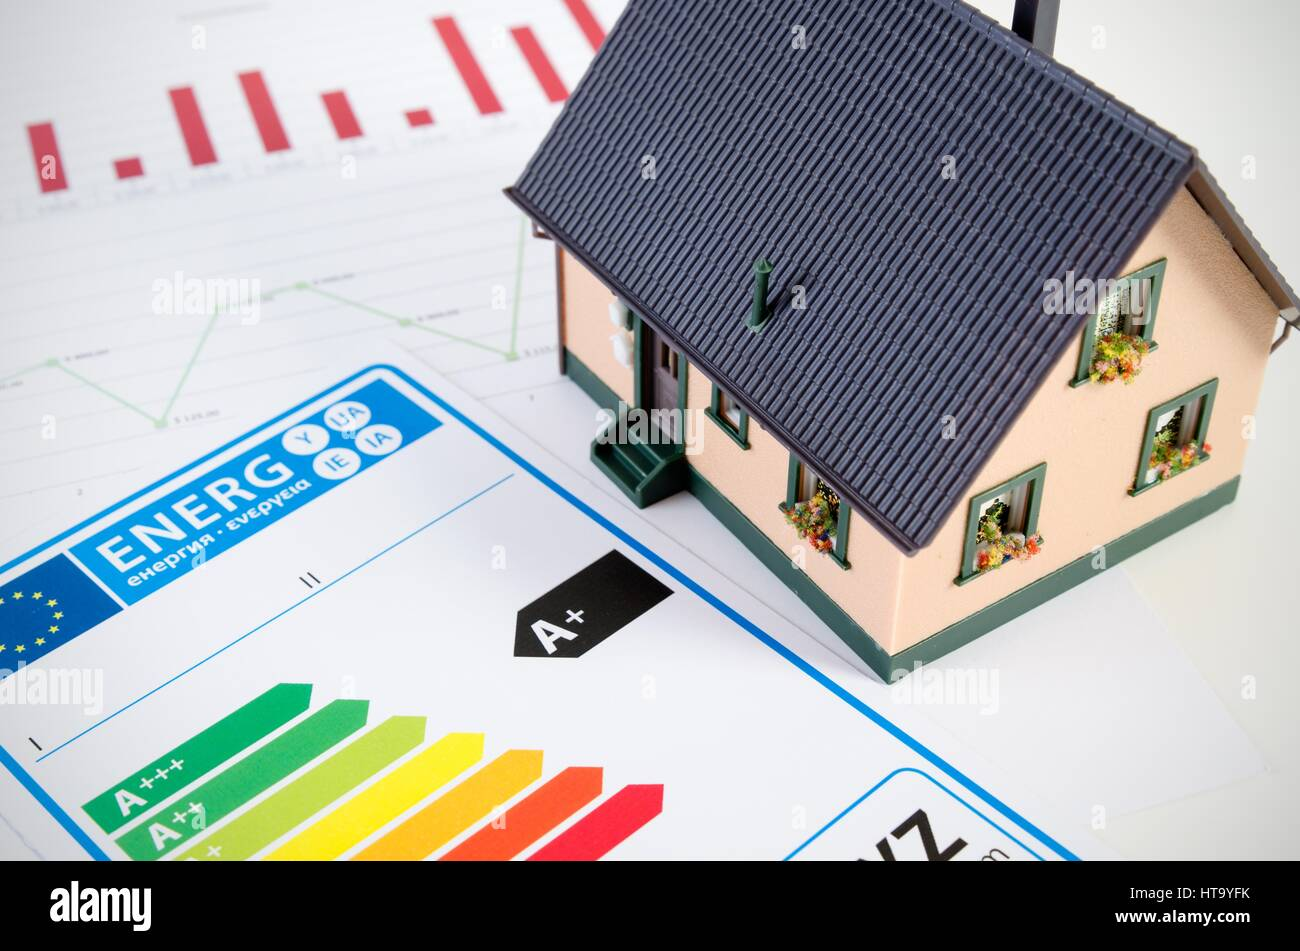 Energy efficiency concept with house model and documents on desk - Stock Image